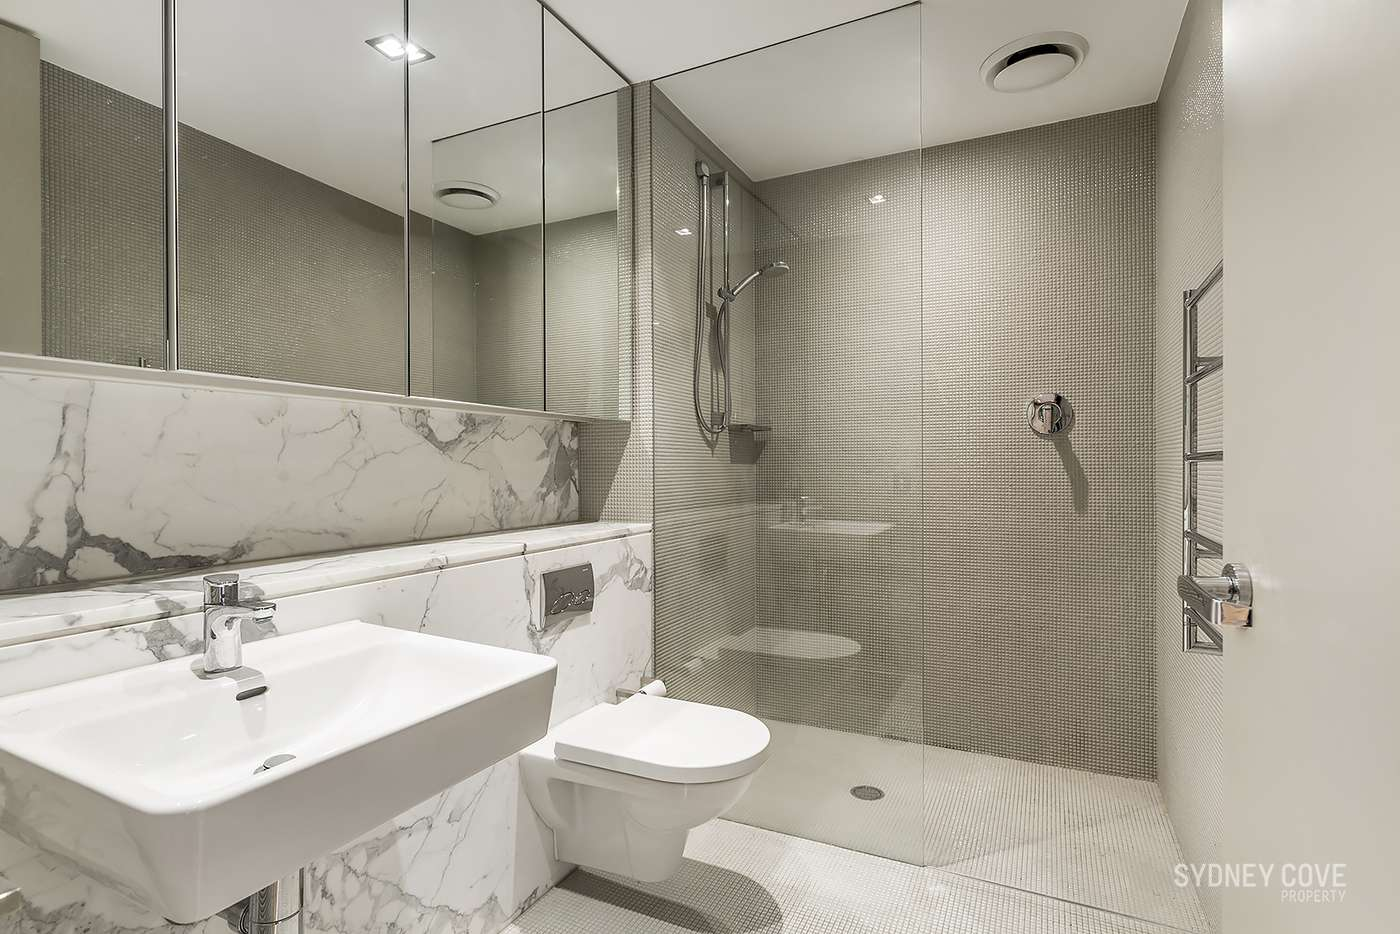 Seventh view of Homely apartment listing, 171 Gloucester St, Sydney NSW 2000